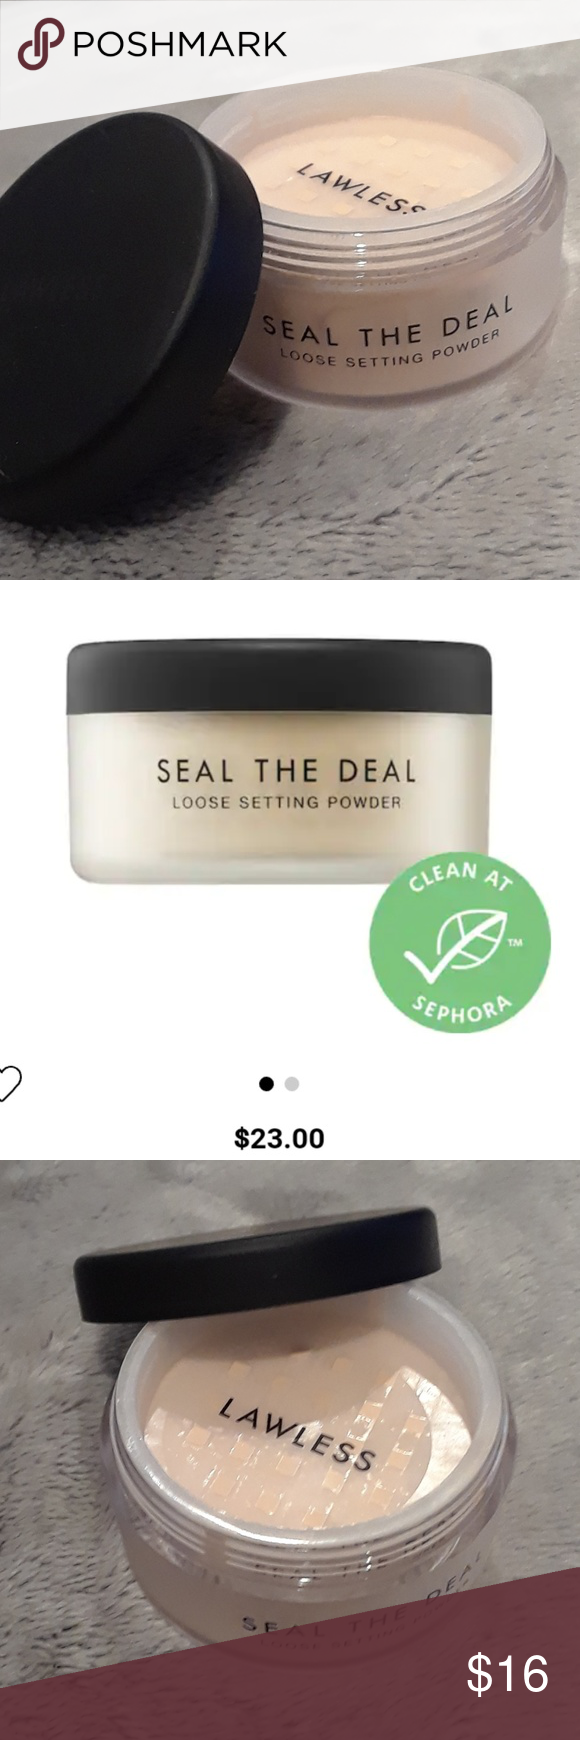 Lawless Seal The Deal loose setting powder NWT (With